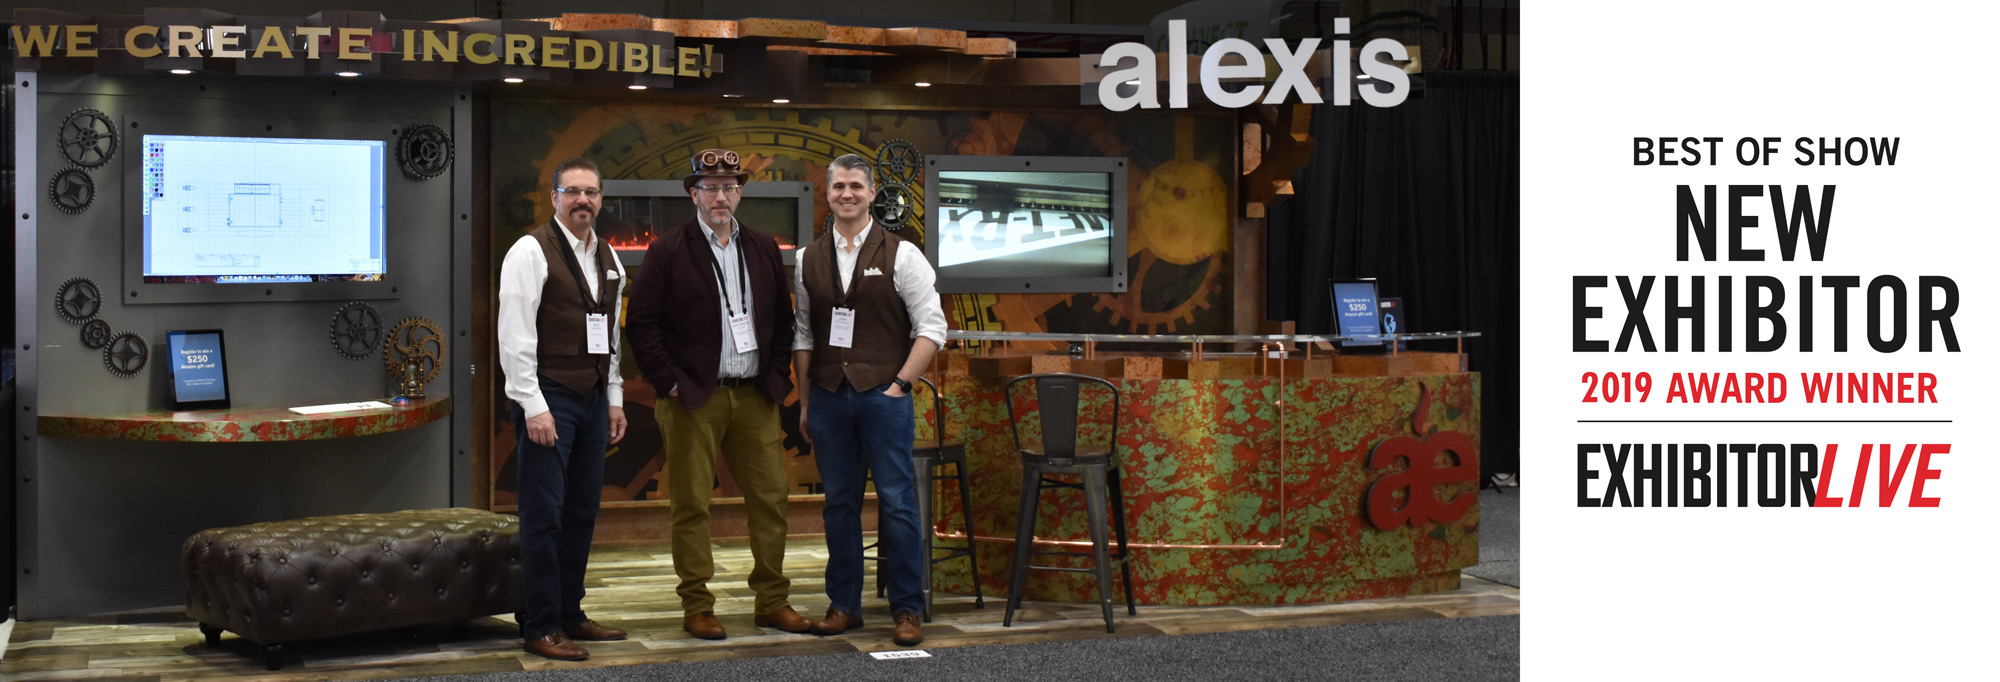 Alexis Exhibits - Best of Show New Exhibitor 2019 Award Winner - ExhibitorLIVE